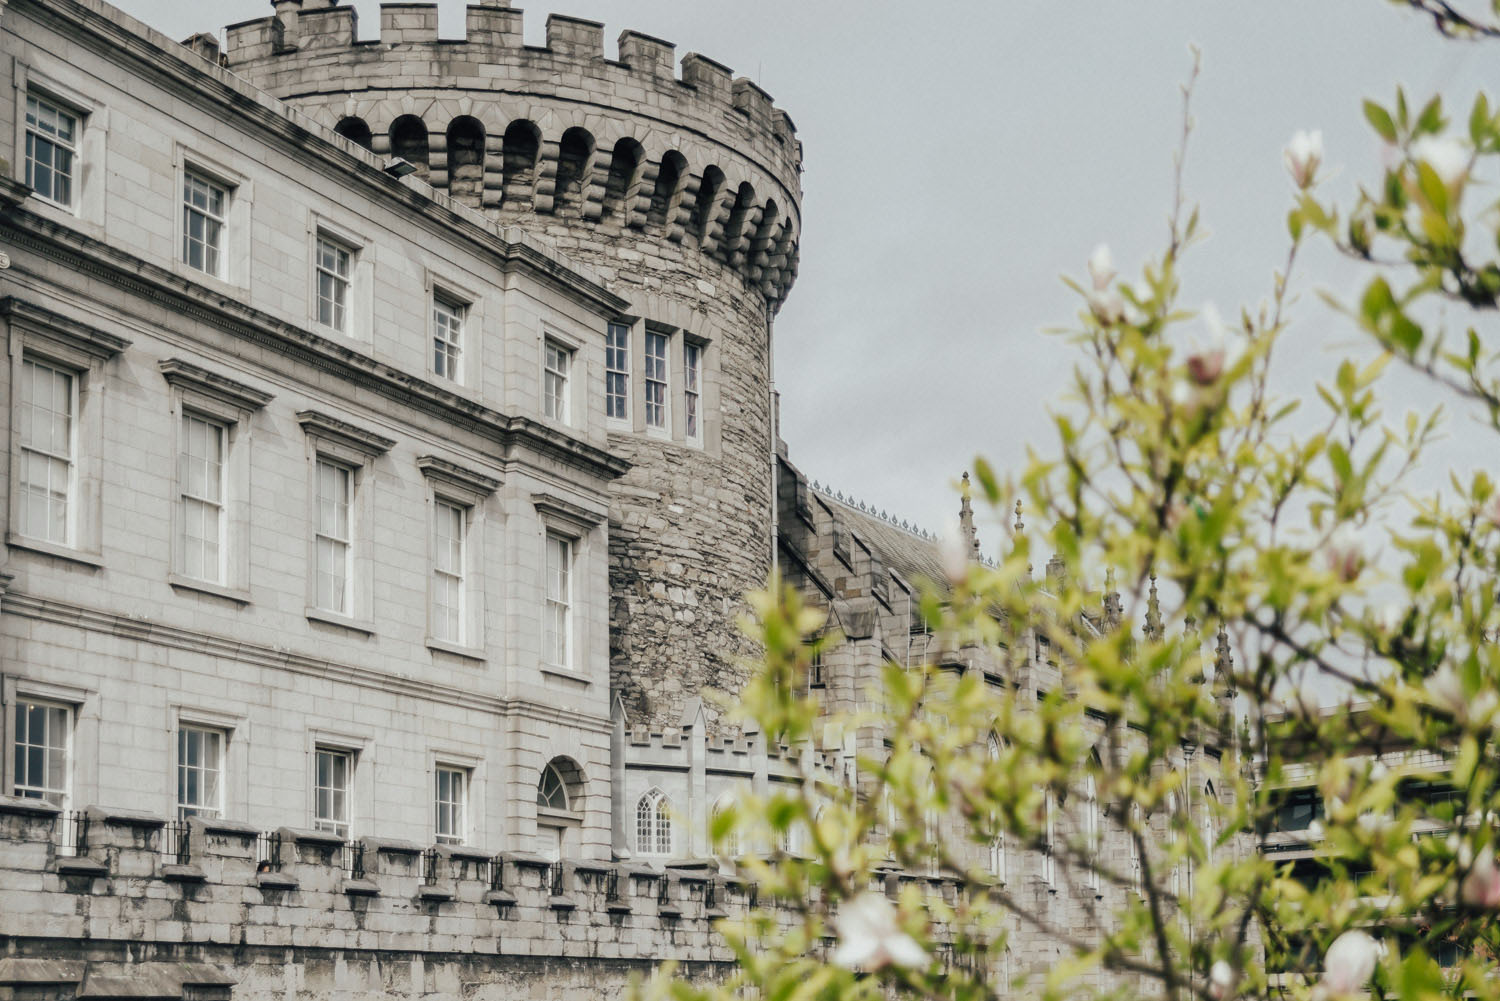 Best Instagram Spot by Dublin Castle